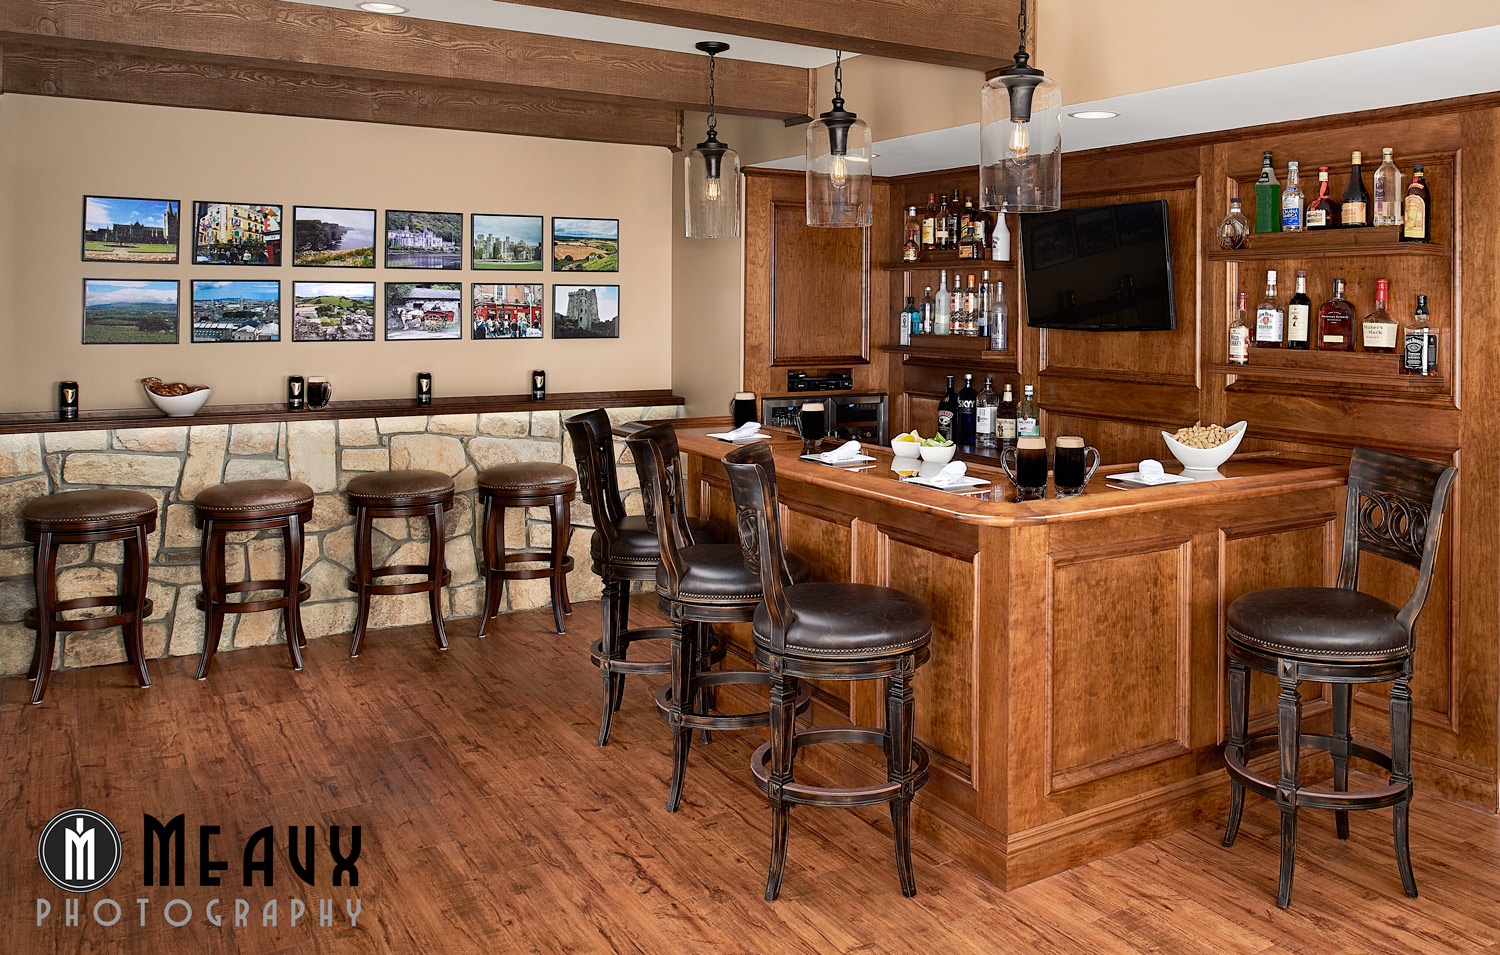 Build An Irish Pub In Your Basement  Grace Thomas Designs. English Kitchens Design. Italian Kitchen Design. Industrial Design Kitchen. Outside Kitchen Design. Designs For Kitchen Cupboards. Kitchen Lighting Designs. Purple Kitchen Designs. Layout Kitchen Design